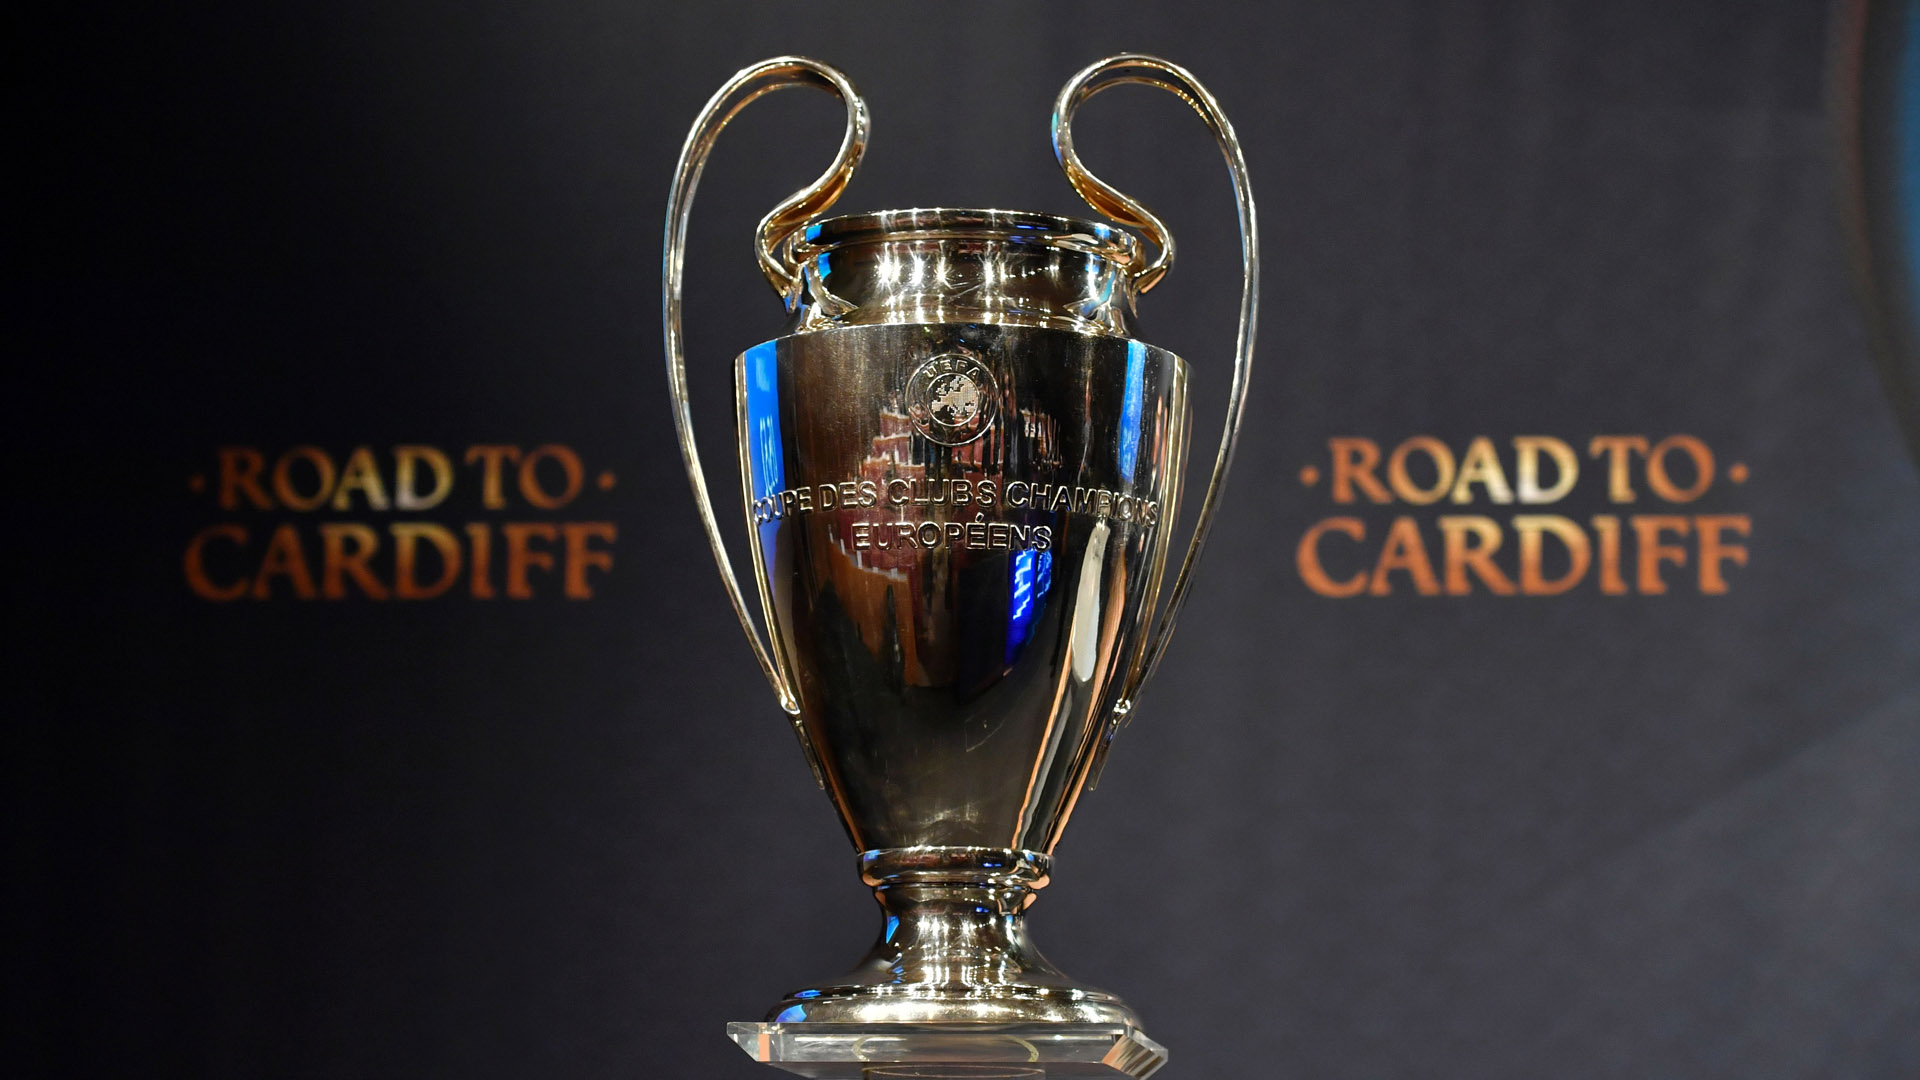 Calcio in Tv: la Champions League torna a Sky dal 2018